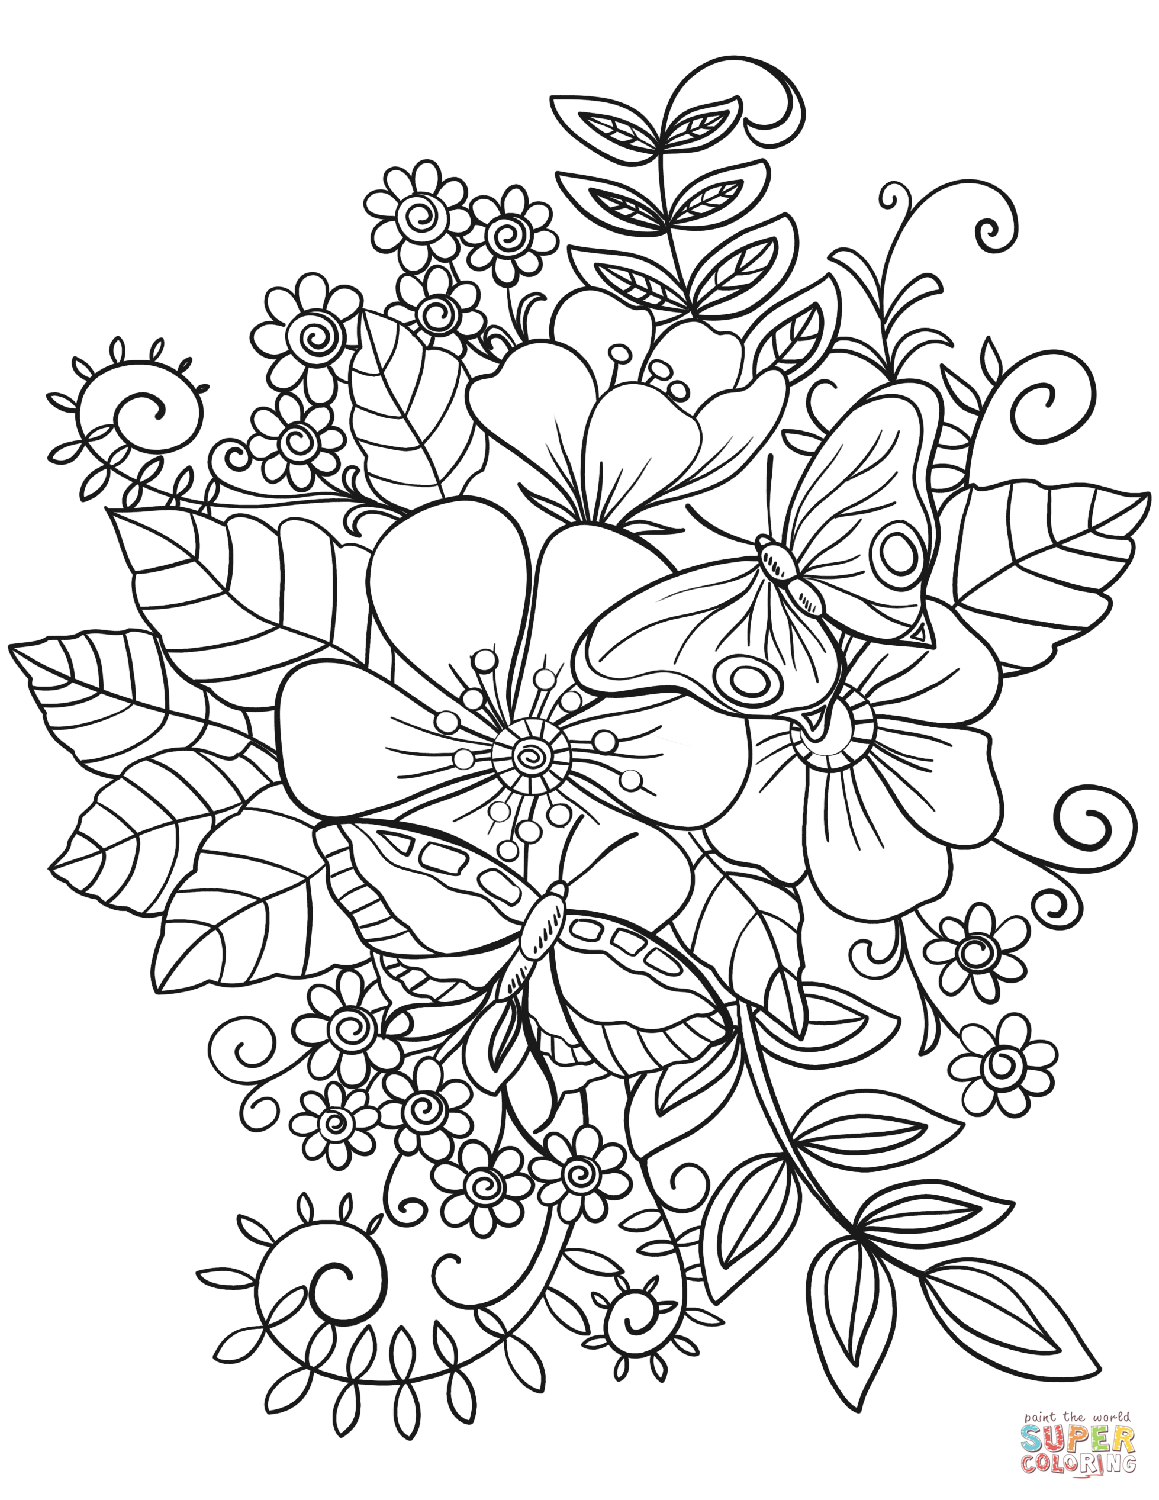 flowers coloring sheet spring flowers coloring pages printable sheet coloring flowers